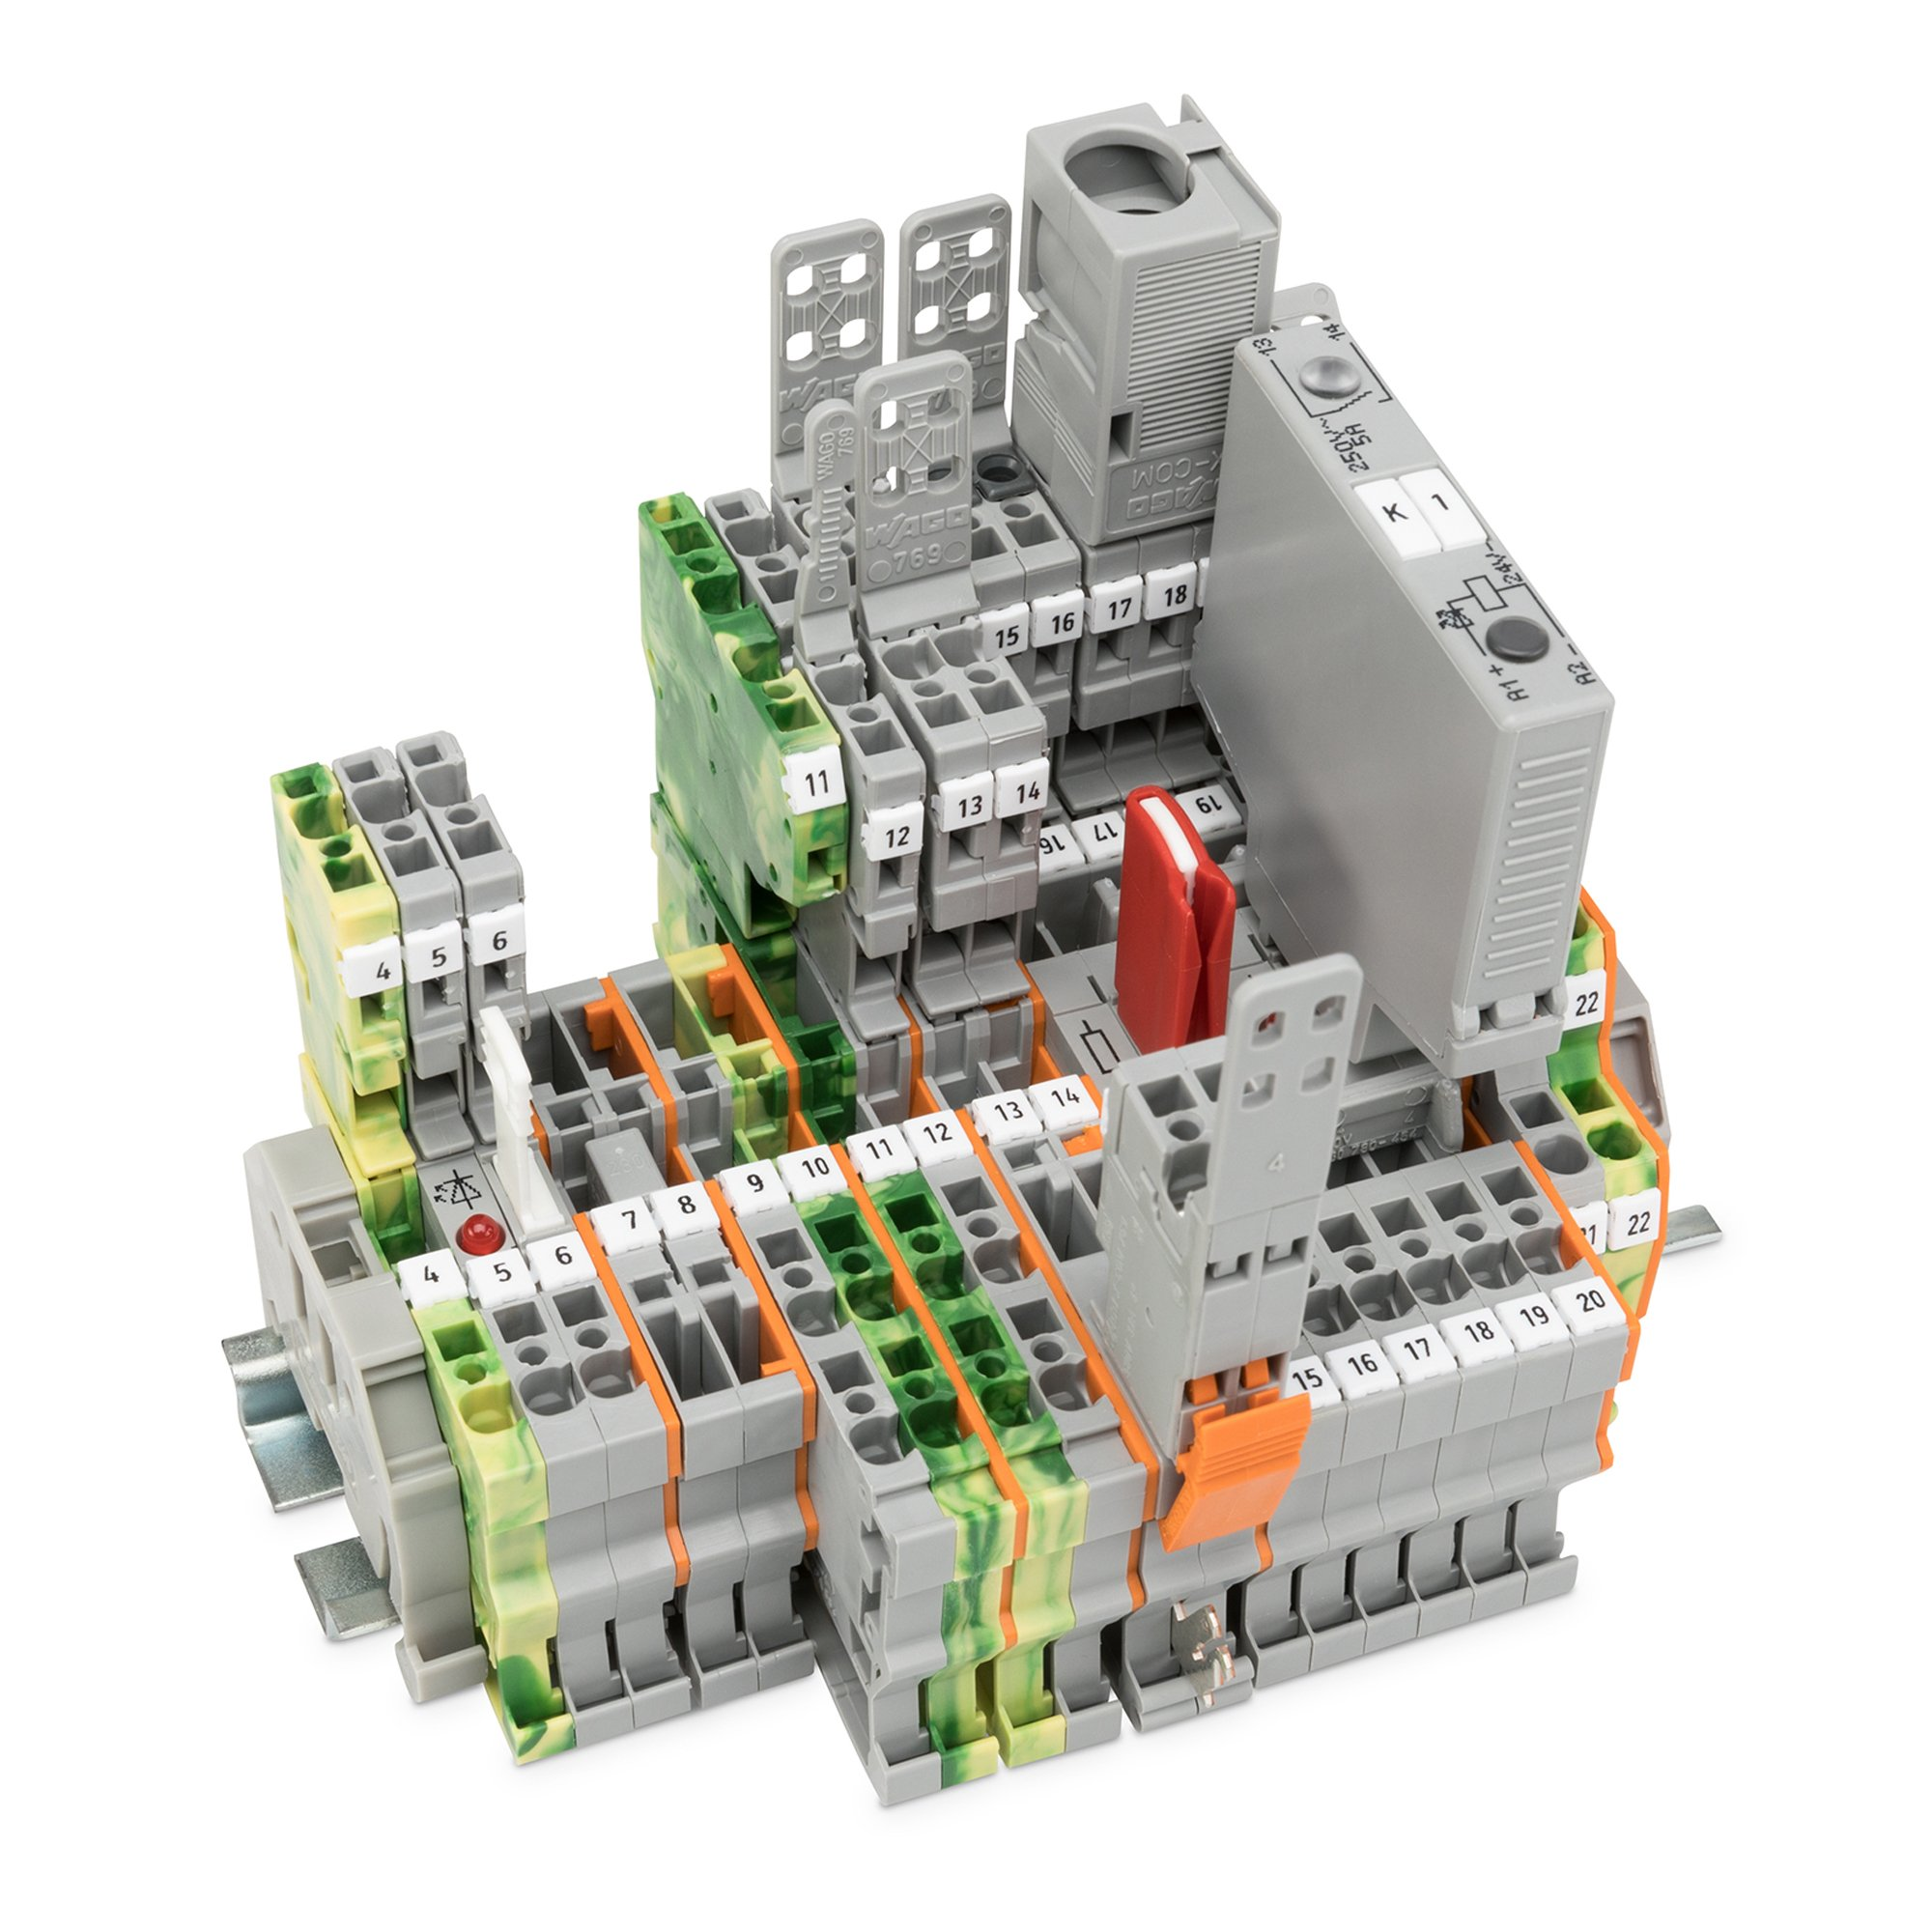 Rail-Mount Terminal Blocks – Only the Best for Control